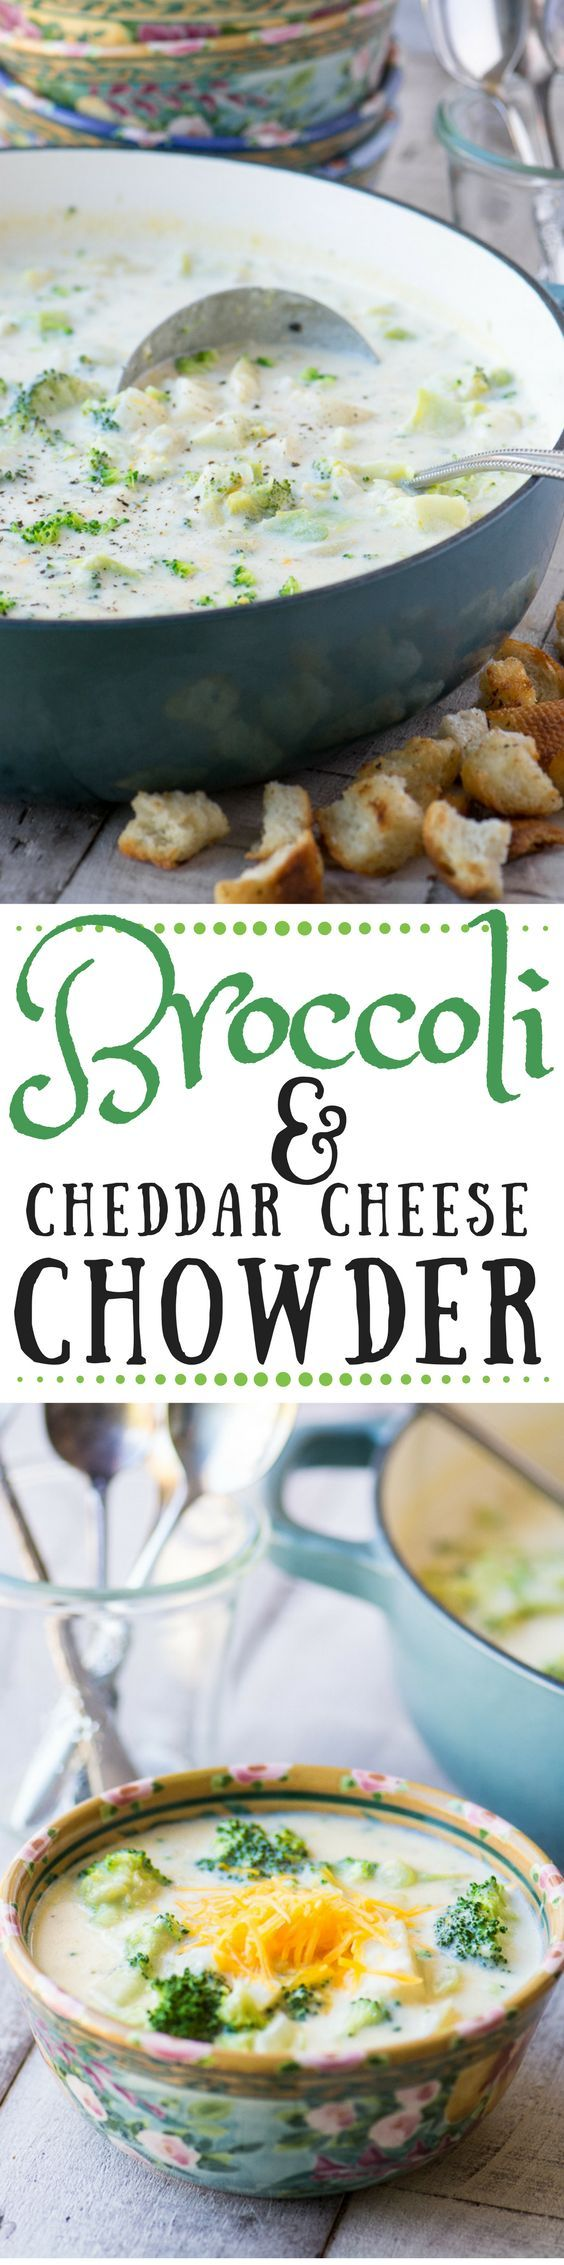 Broccoli and Cheddar Cheese Chowder is a warm and comforting 30 minute meal! ~ theviewfromgreatisland.com